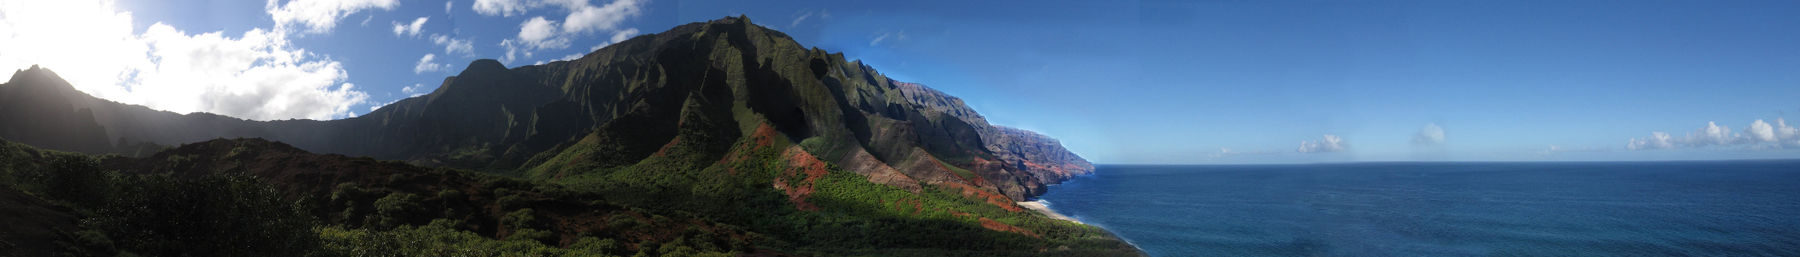 Hawaii banner Na Pali Coast.jpg